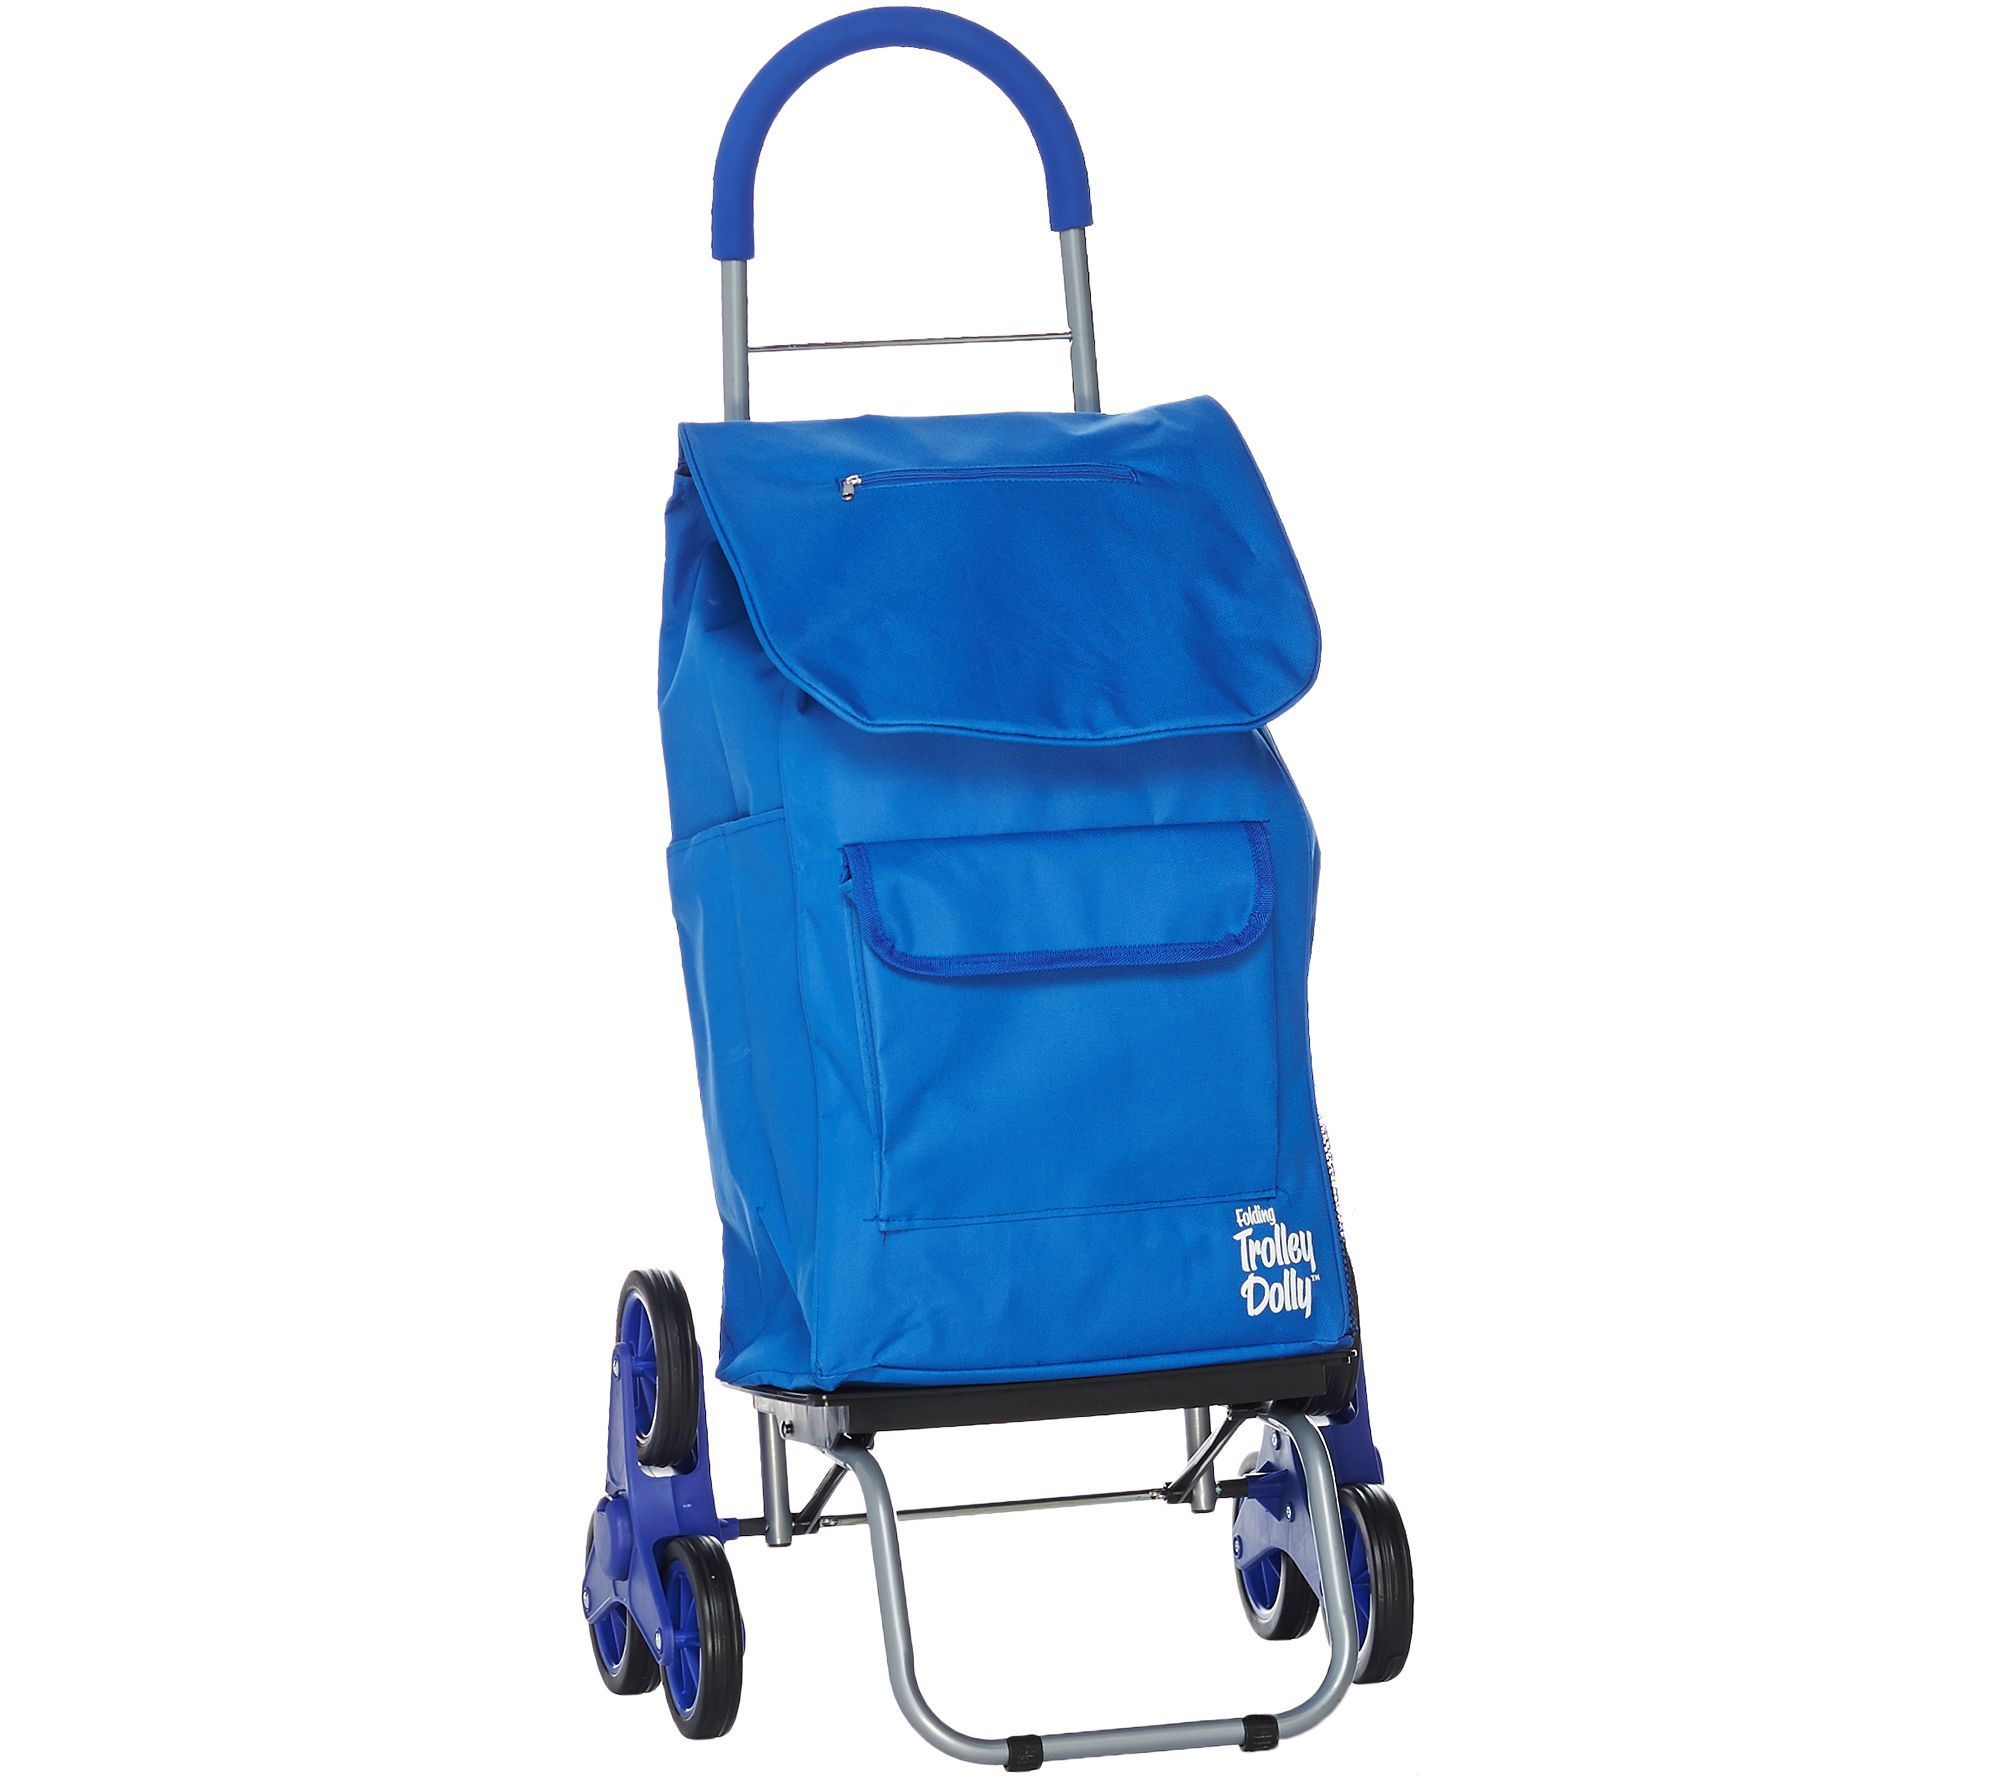 Trolley Dolly 2 In 1 Folding Cart With Stair Climbing Wheels Page Qvc